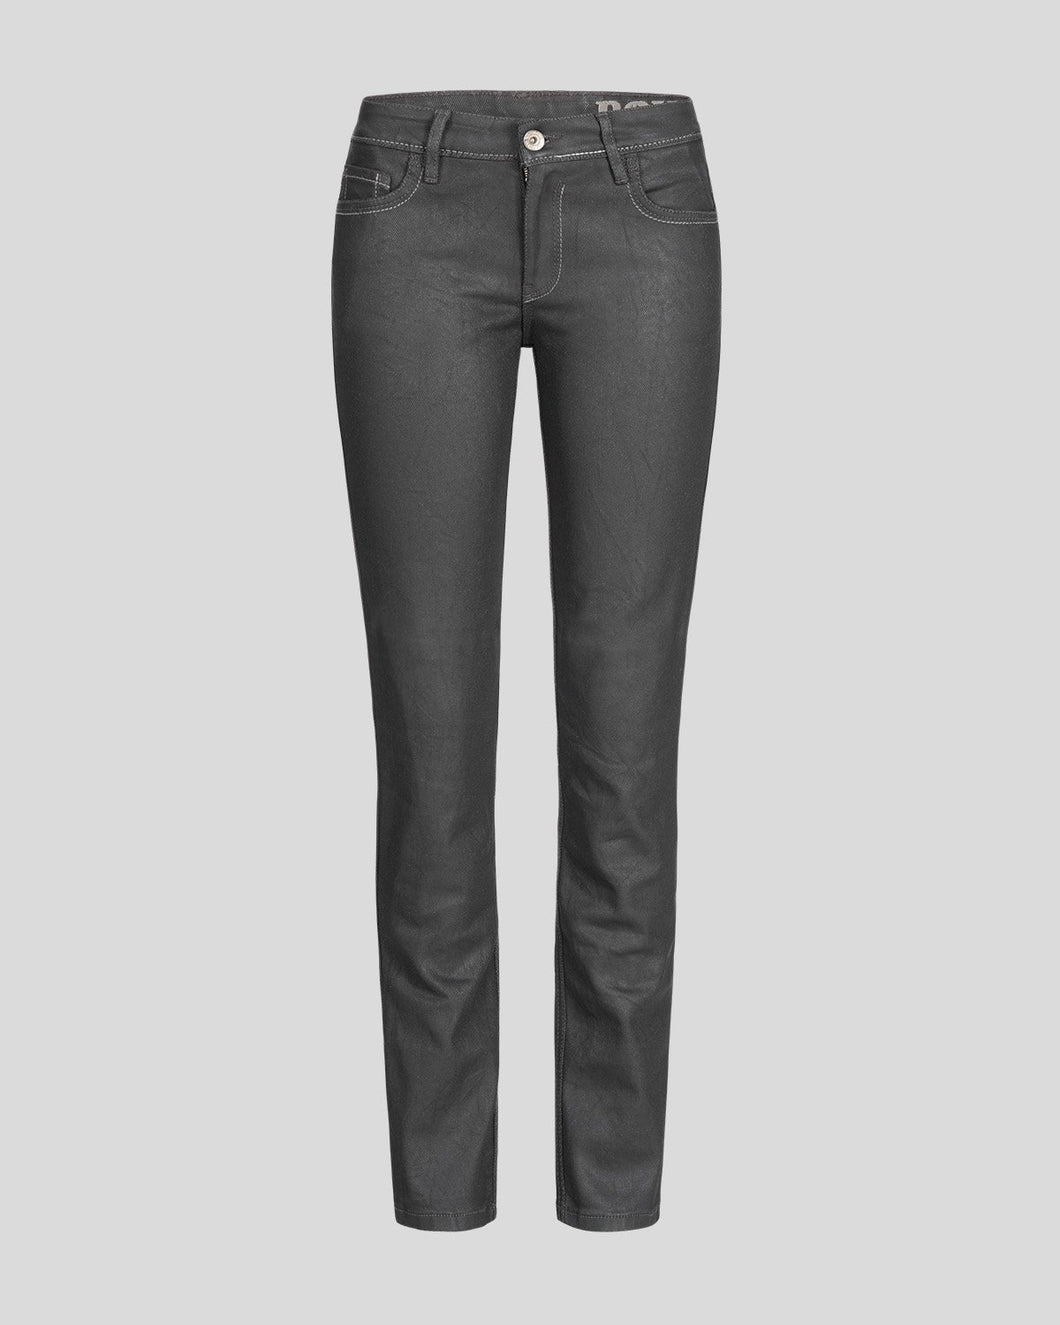 ROKKER THE LADY BLACK  JEANS STONEWASHED